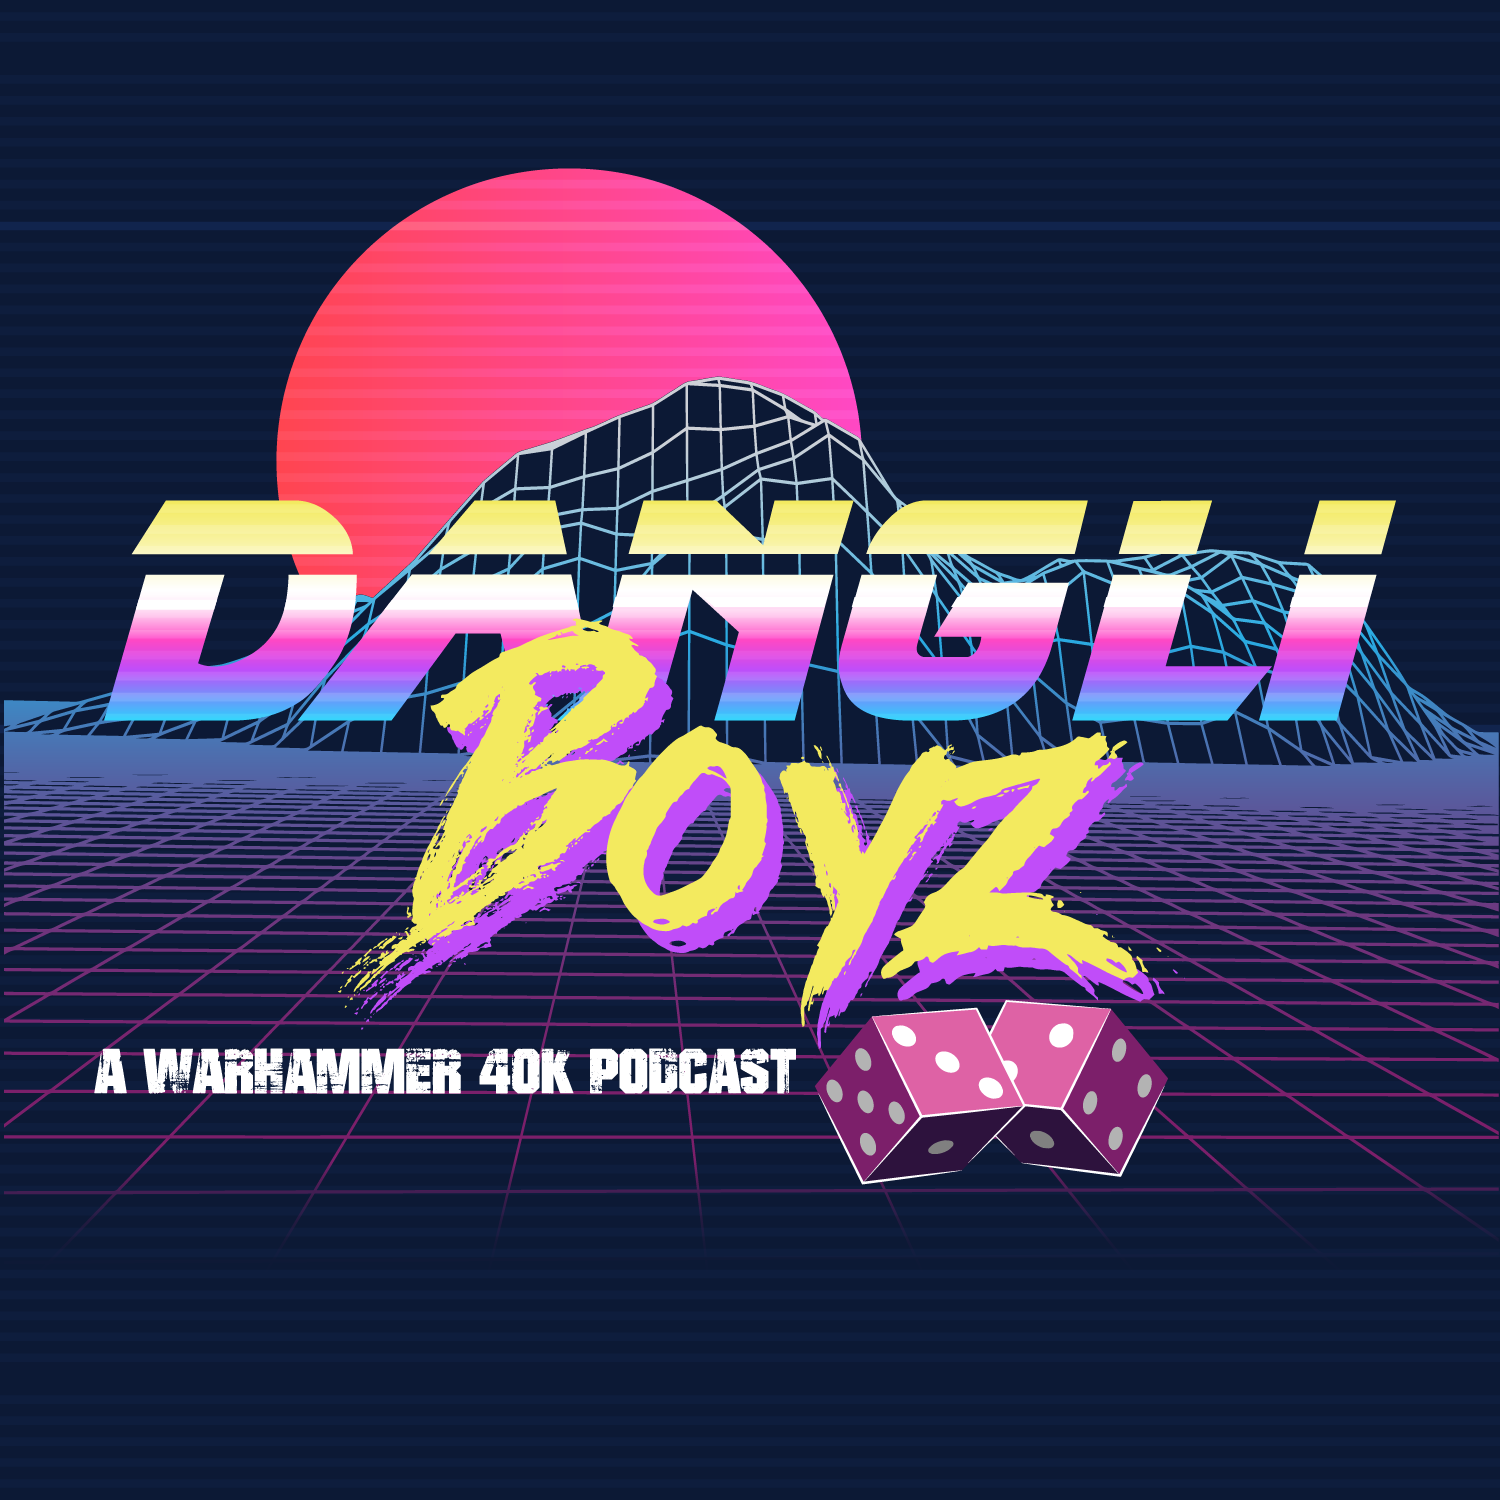 Dangli Boyz | A Warhammer 40k Podcast